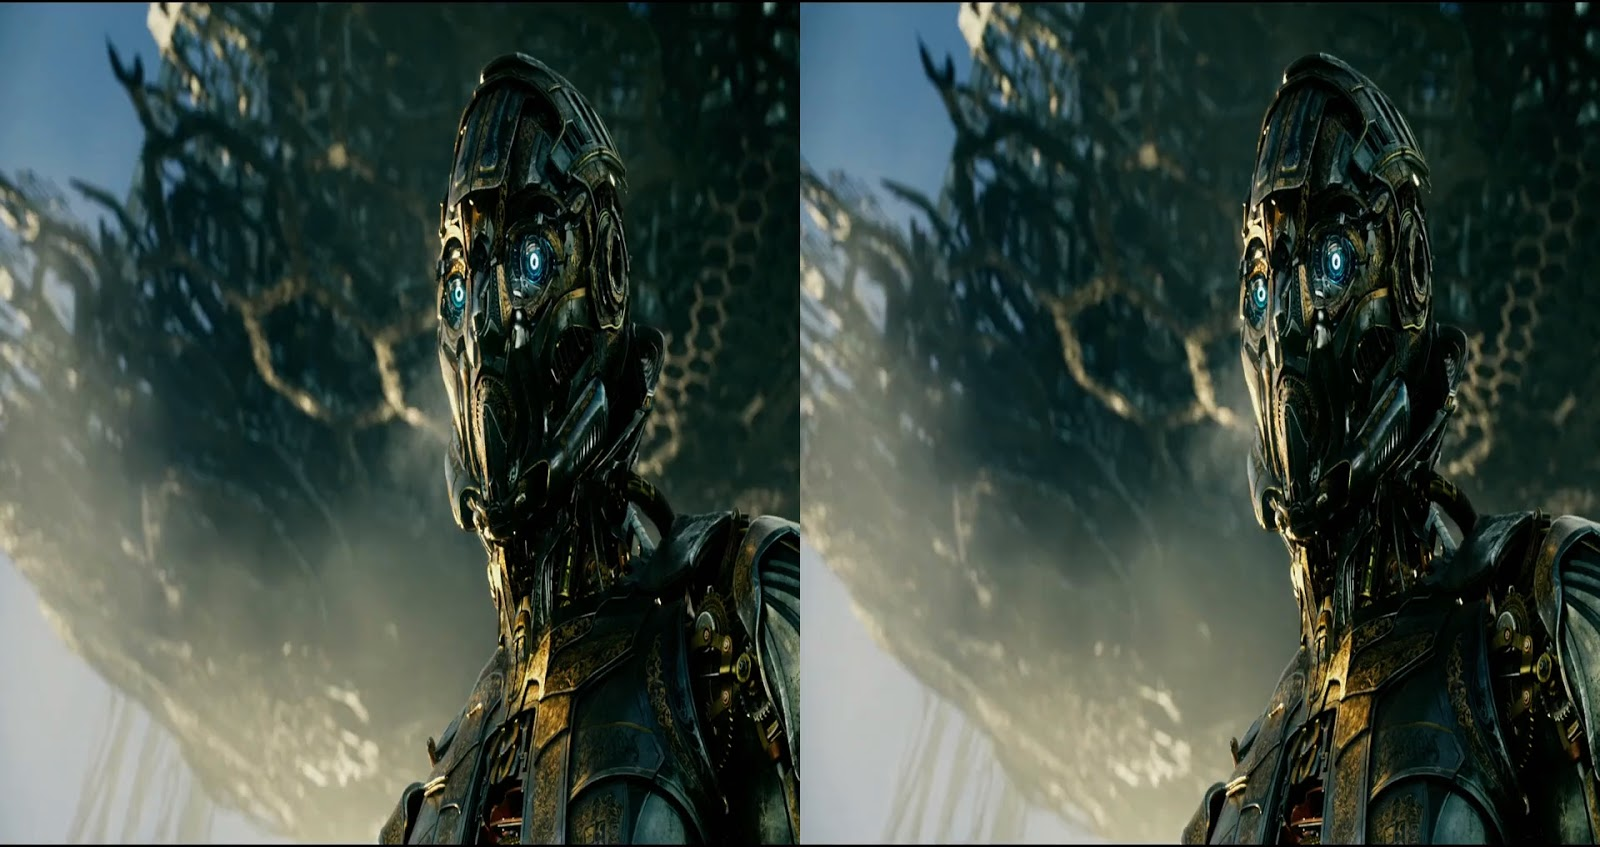 Transformers 5: El último Caballero (2017) 3D SBS 1080p Latino - Ingles captura 4